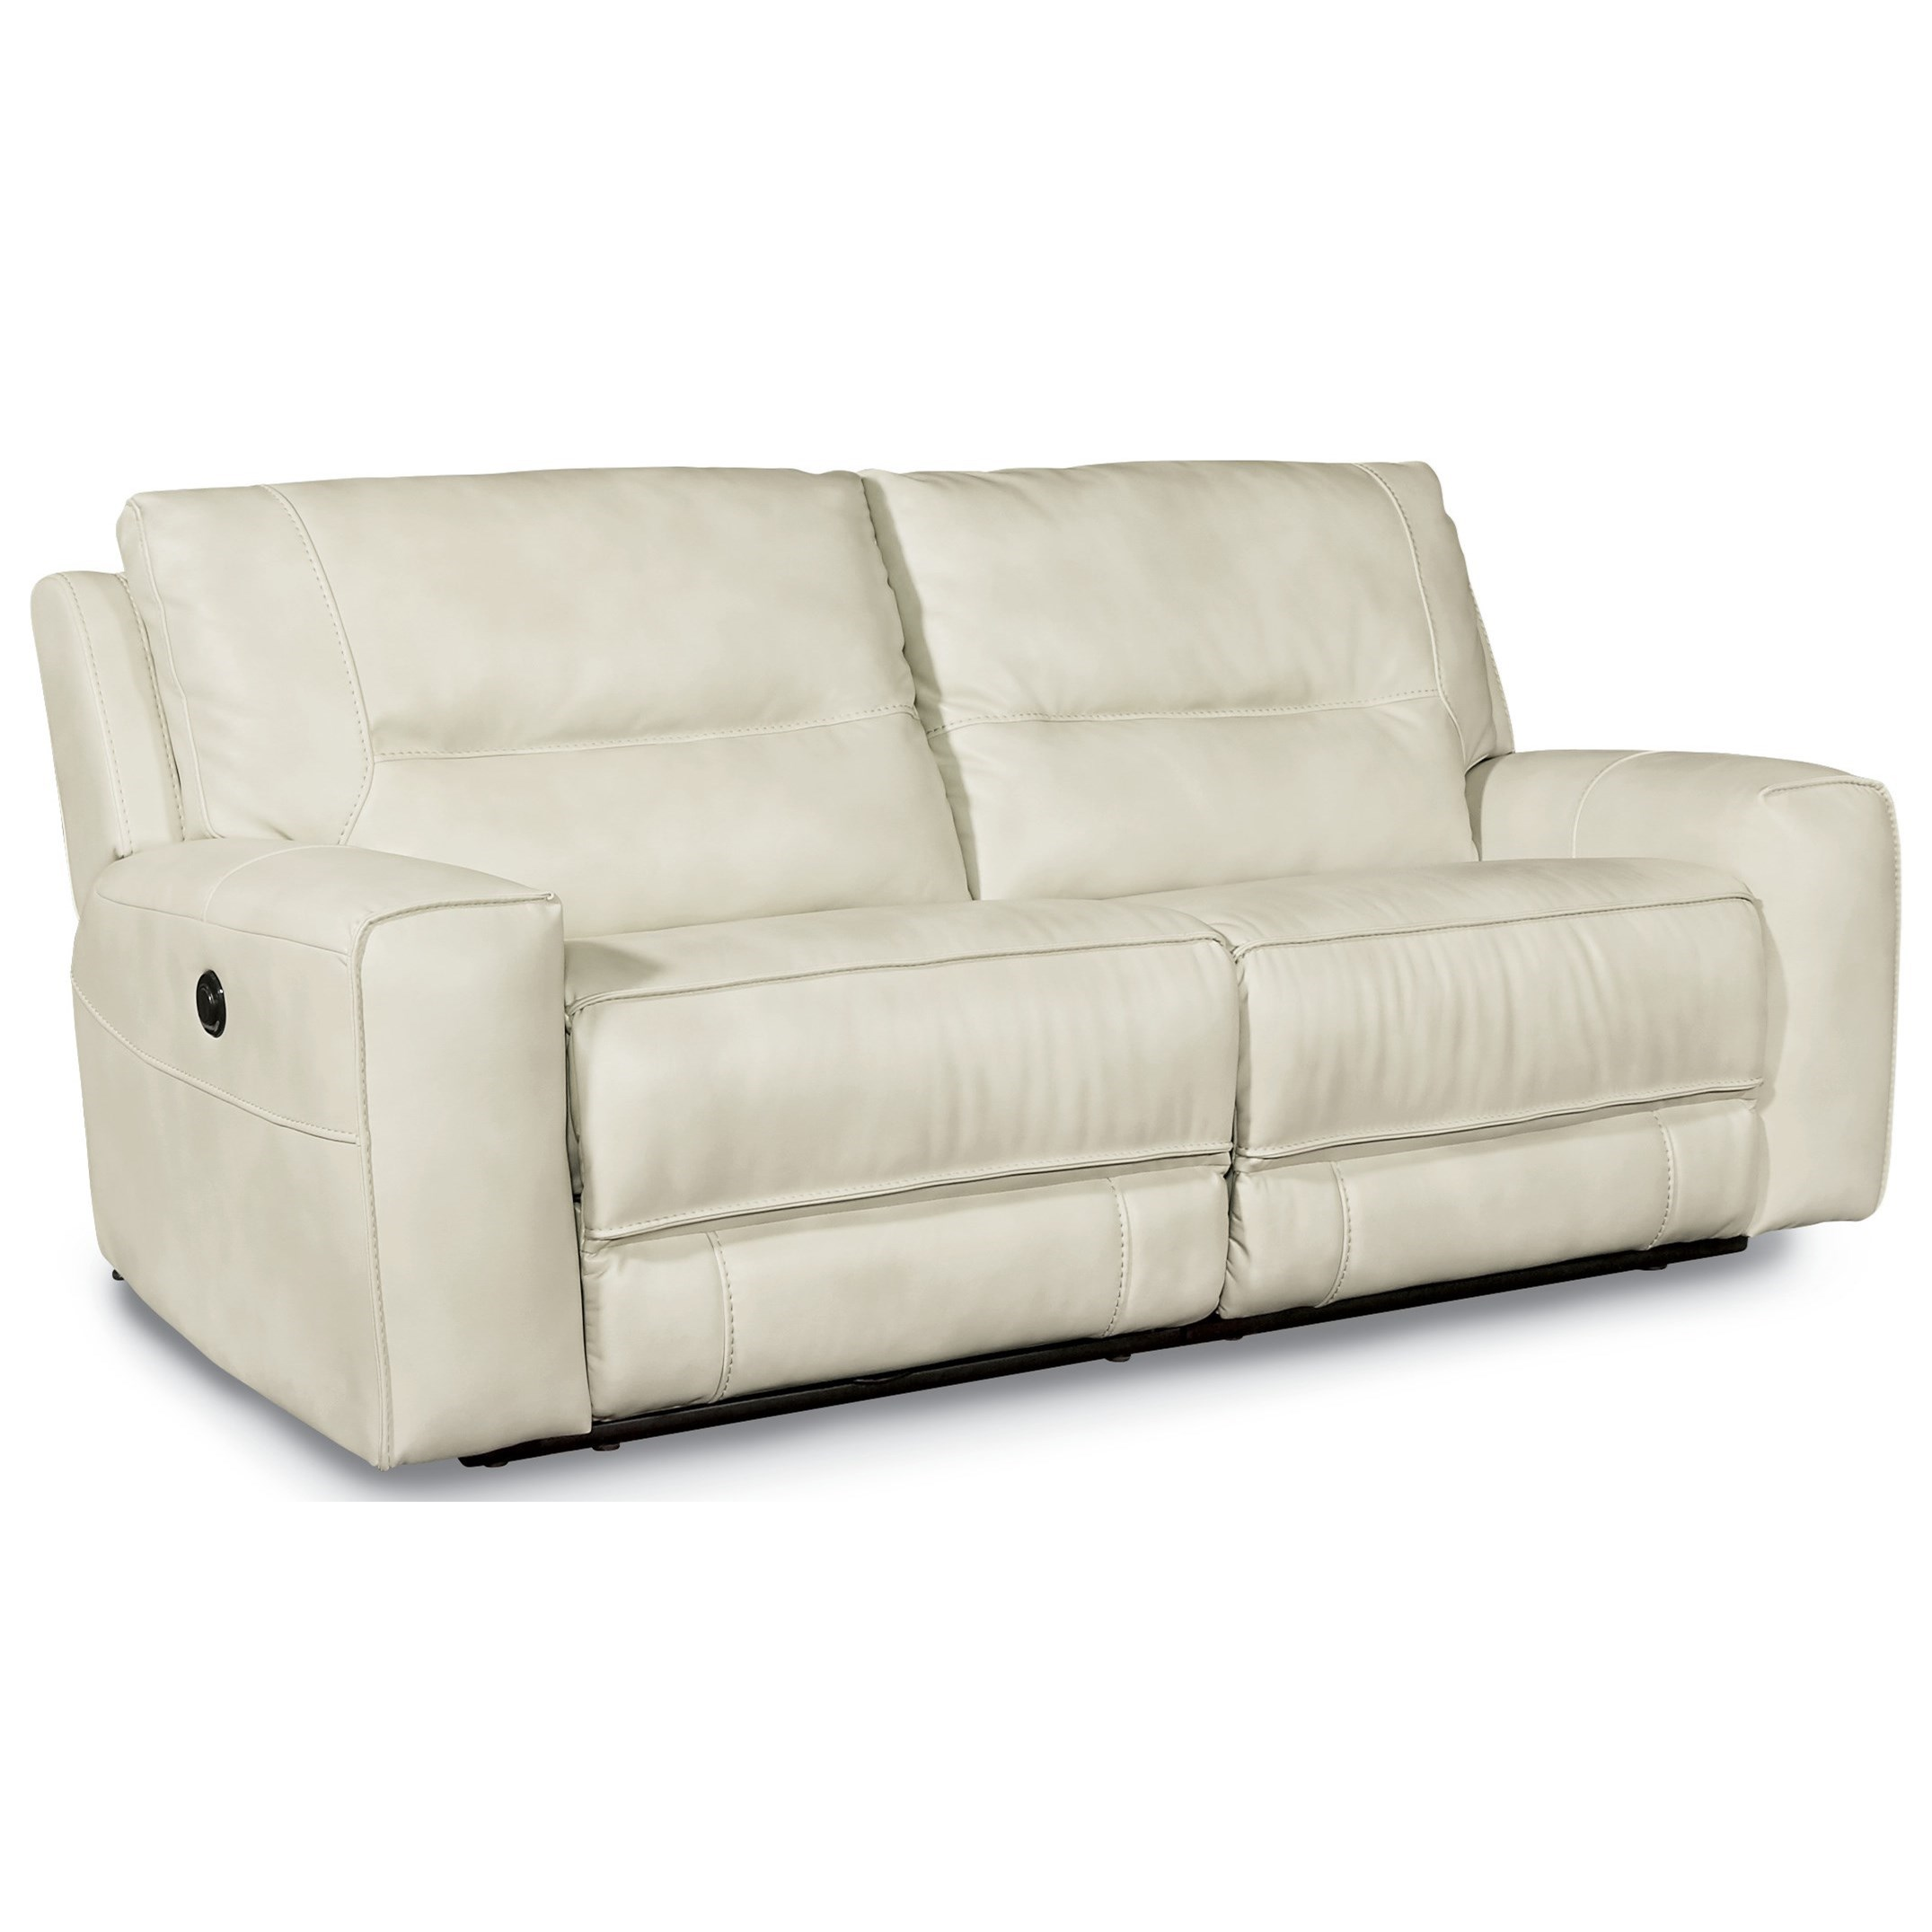 Flexsteel Latitudes-Molino Reclining Small Scale Sectional - Item Number: 1756-57P+1756-58P